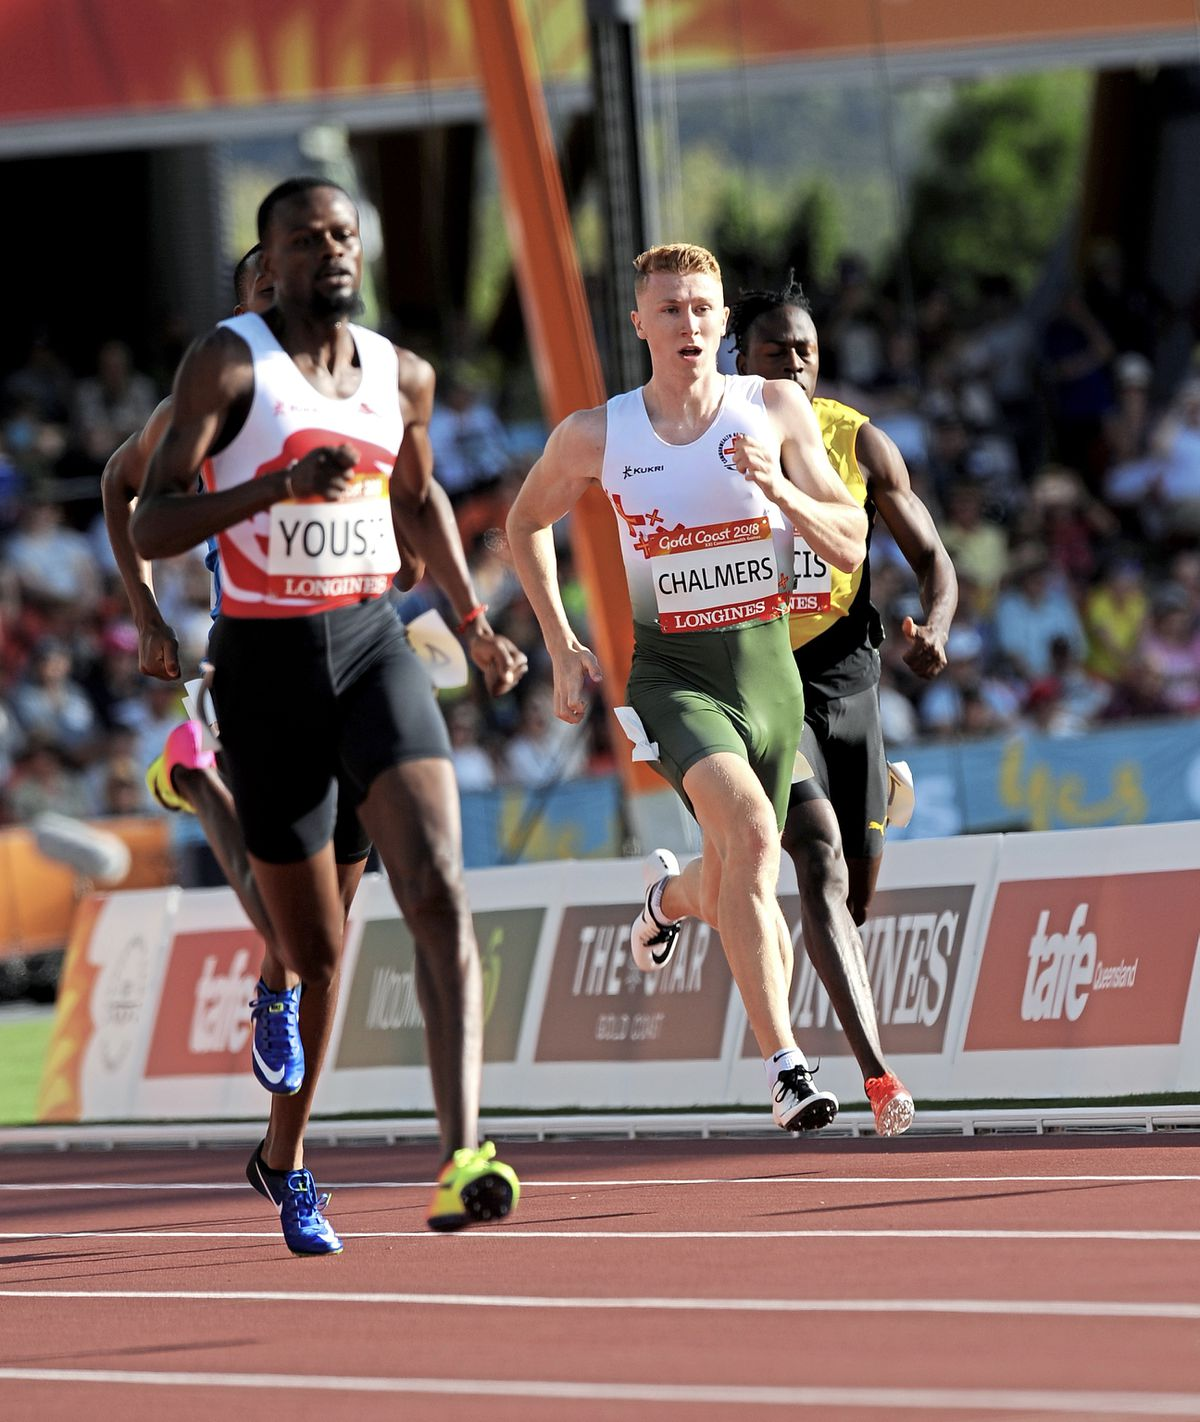 Elite performer: Cameron Chalmers runs the 400m at the 2018 Commonwealth Games. (28883149)